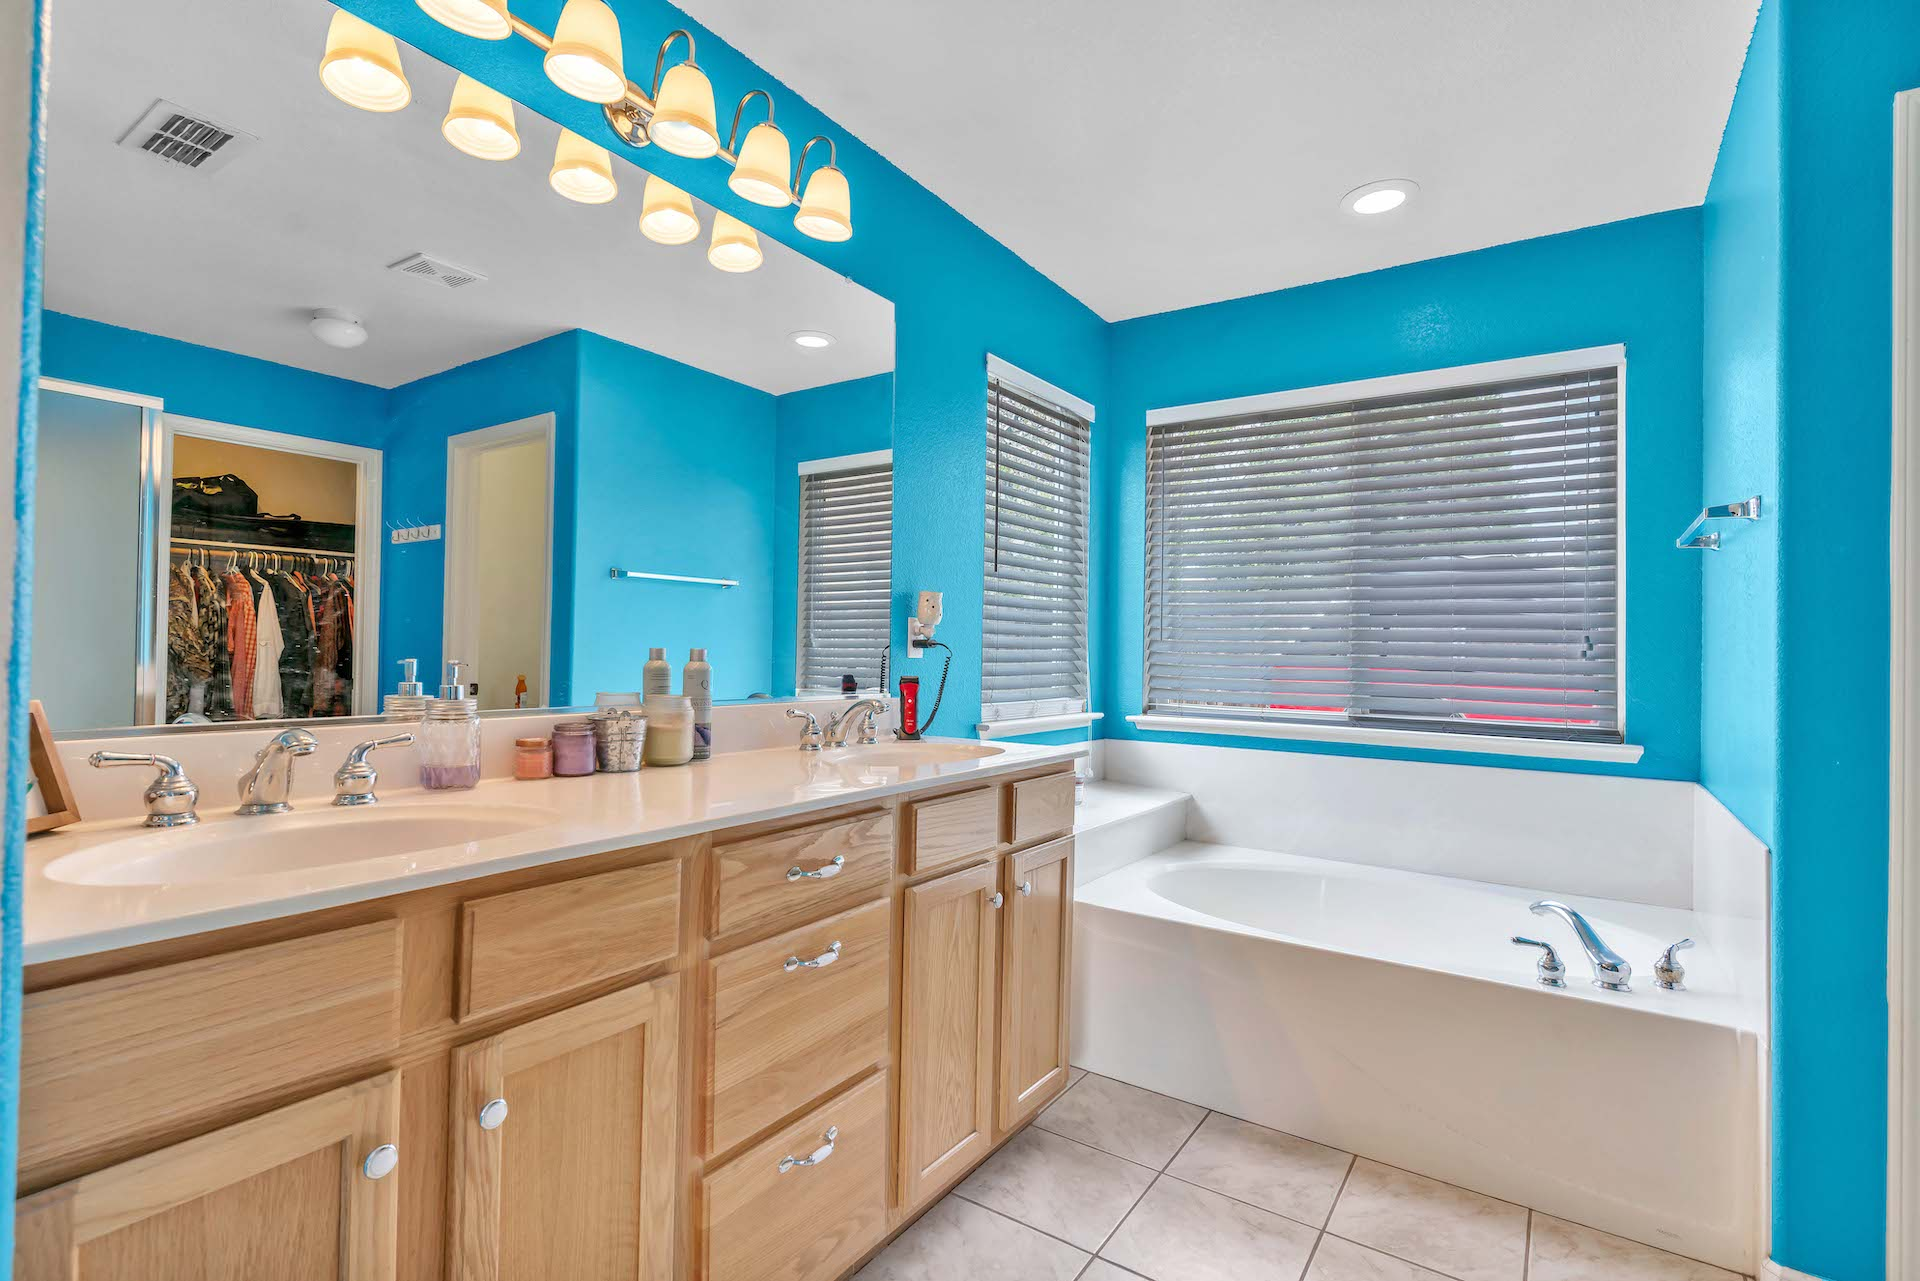 157 Clydesdale Way, Roseville, Ca | Master Bathroom | Roseville Real Estate Agent